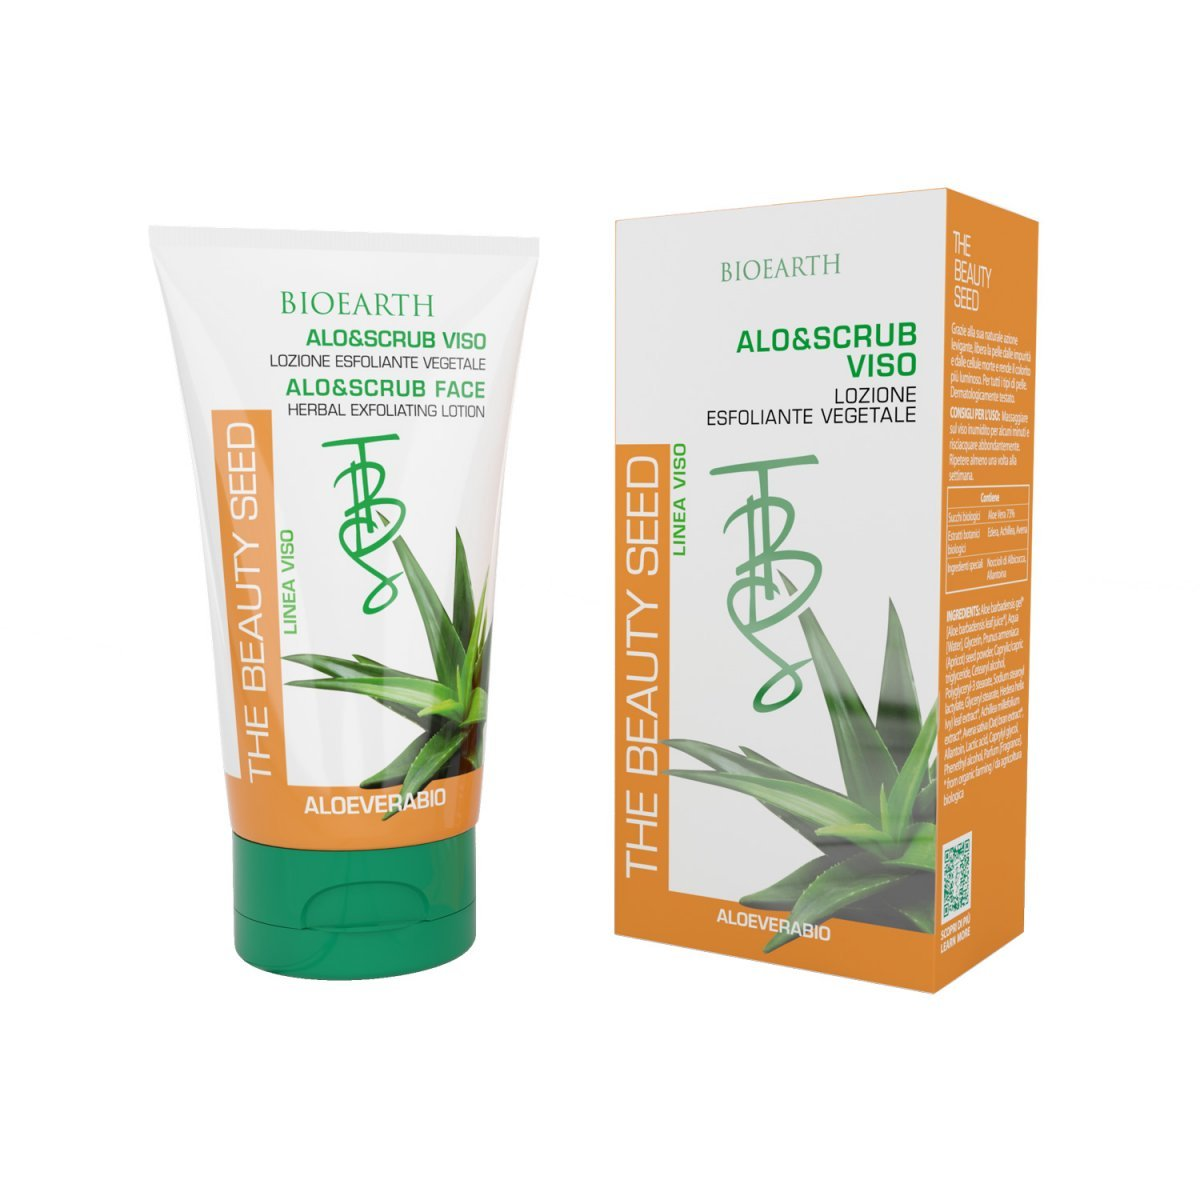 TBS Lozione esfoliante vegetale all'Aloe